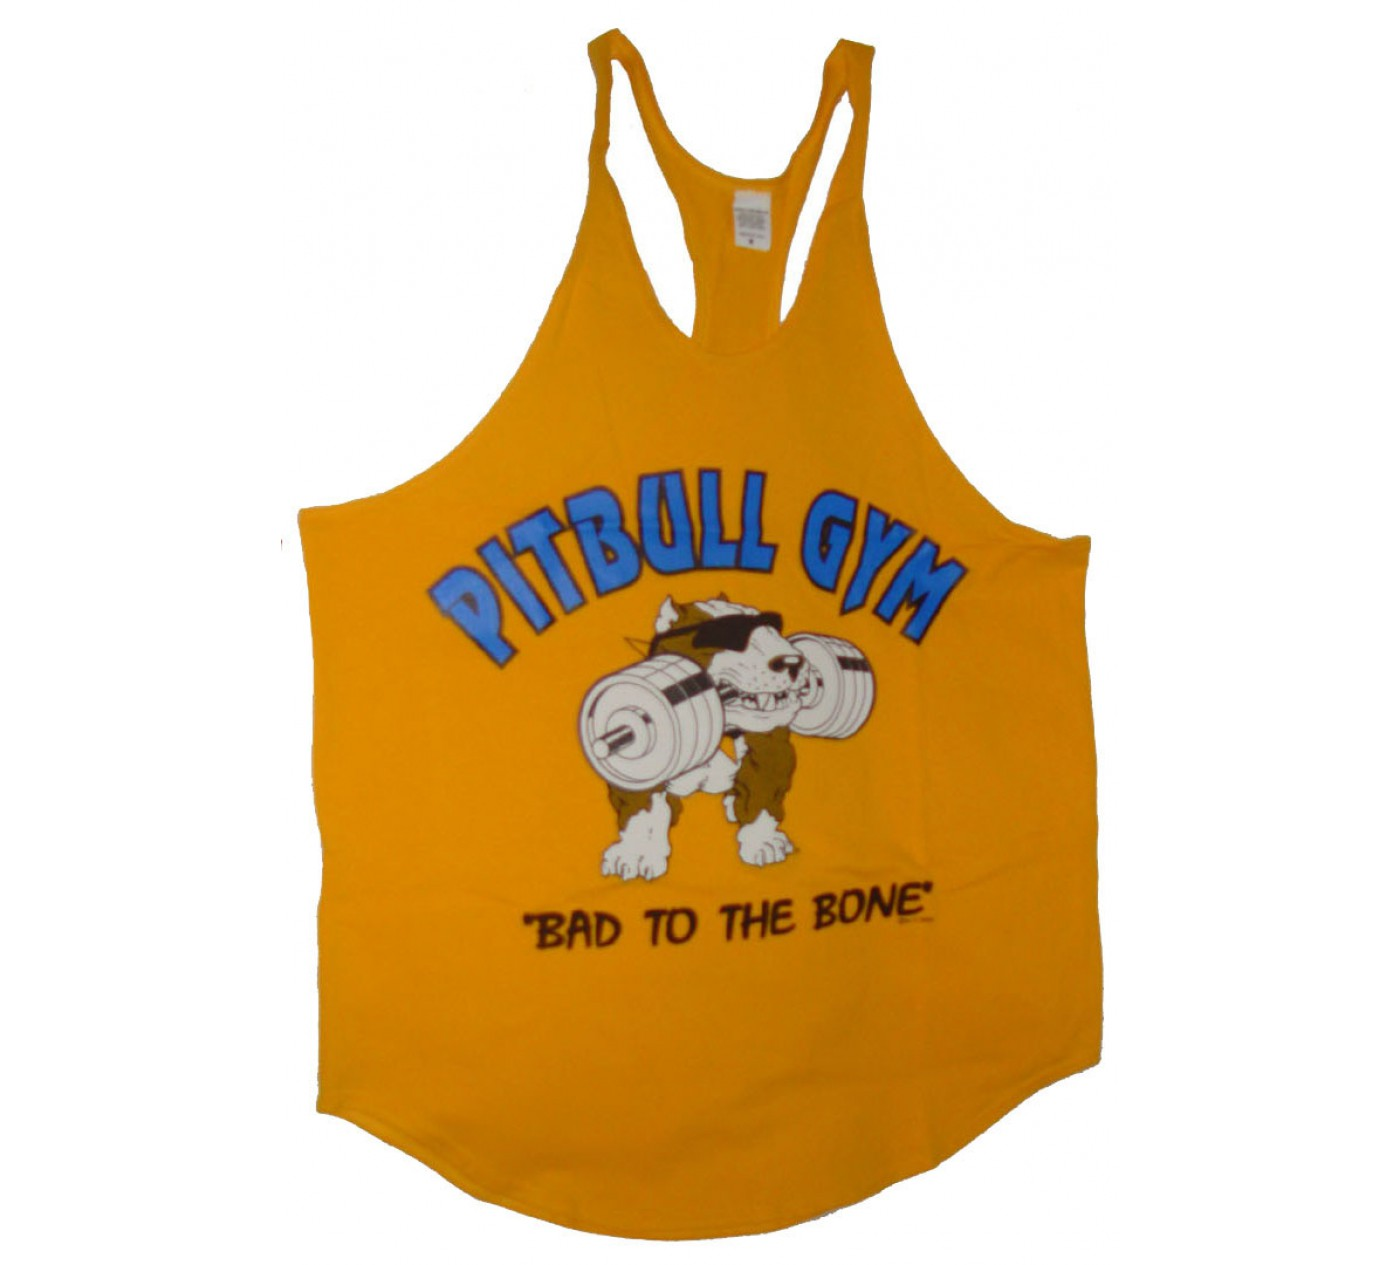 P303 Pitbull Gym karakterlánc Tank Top B2B icon